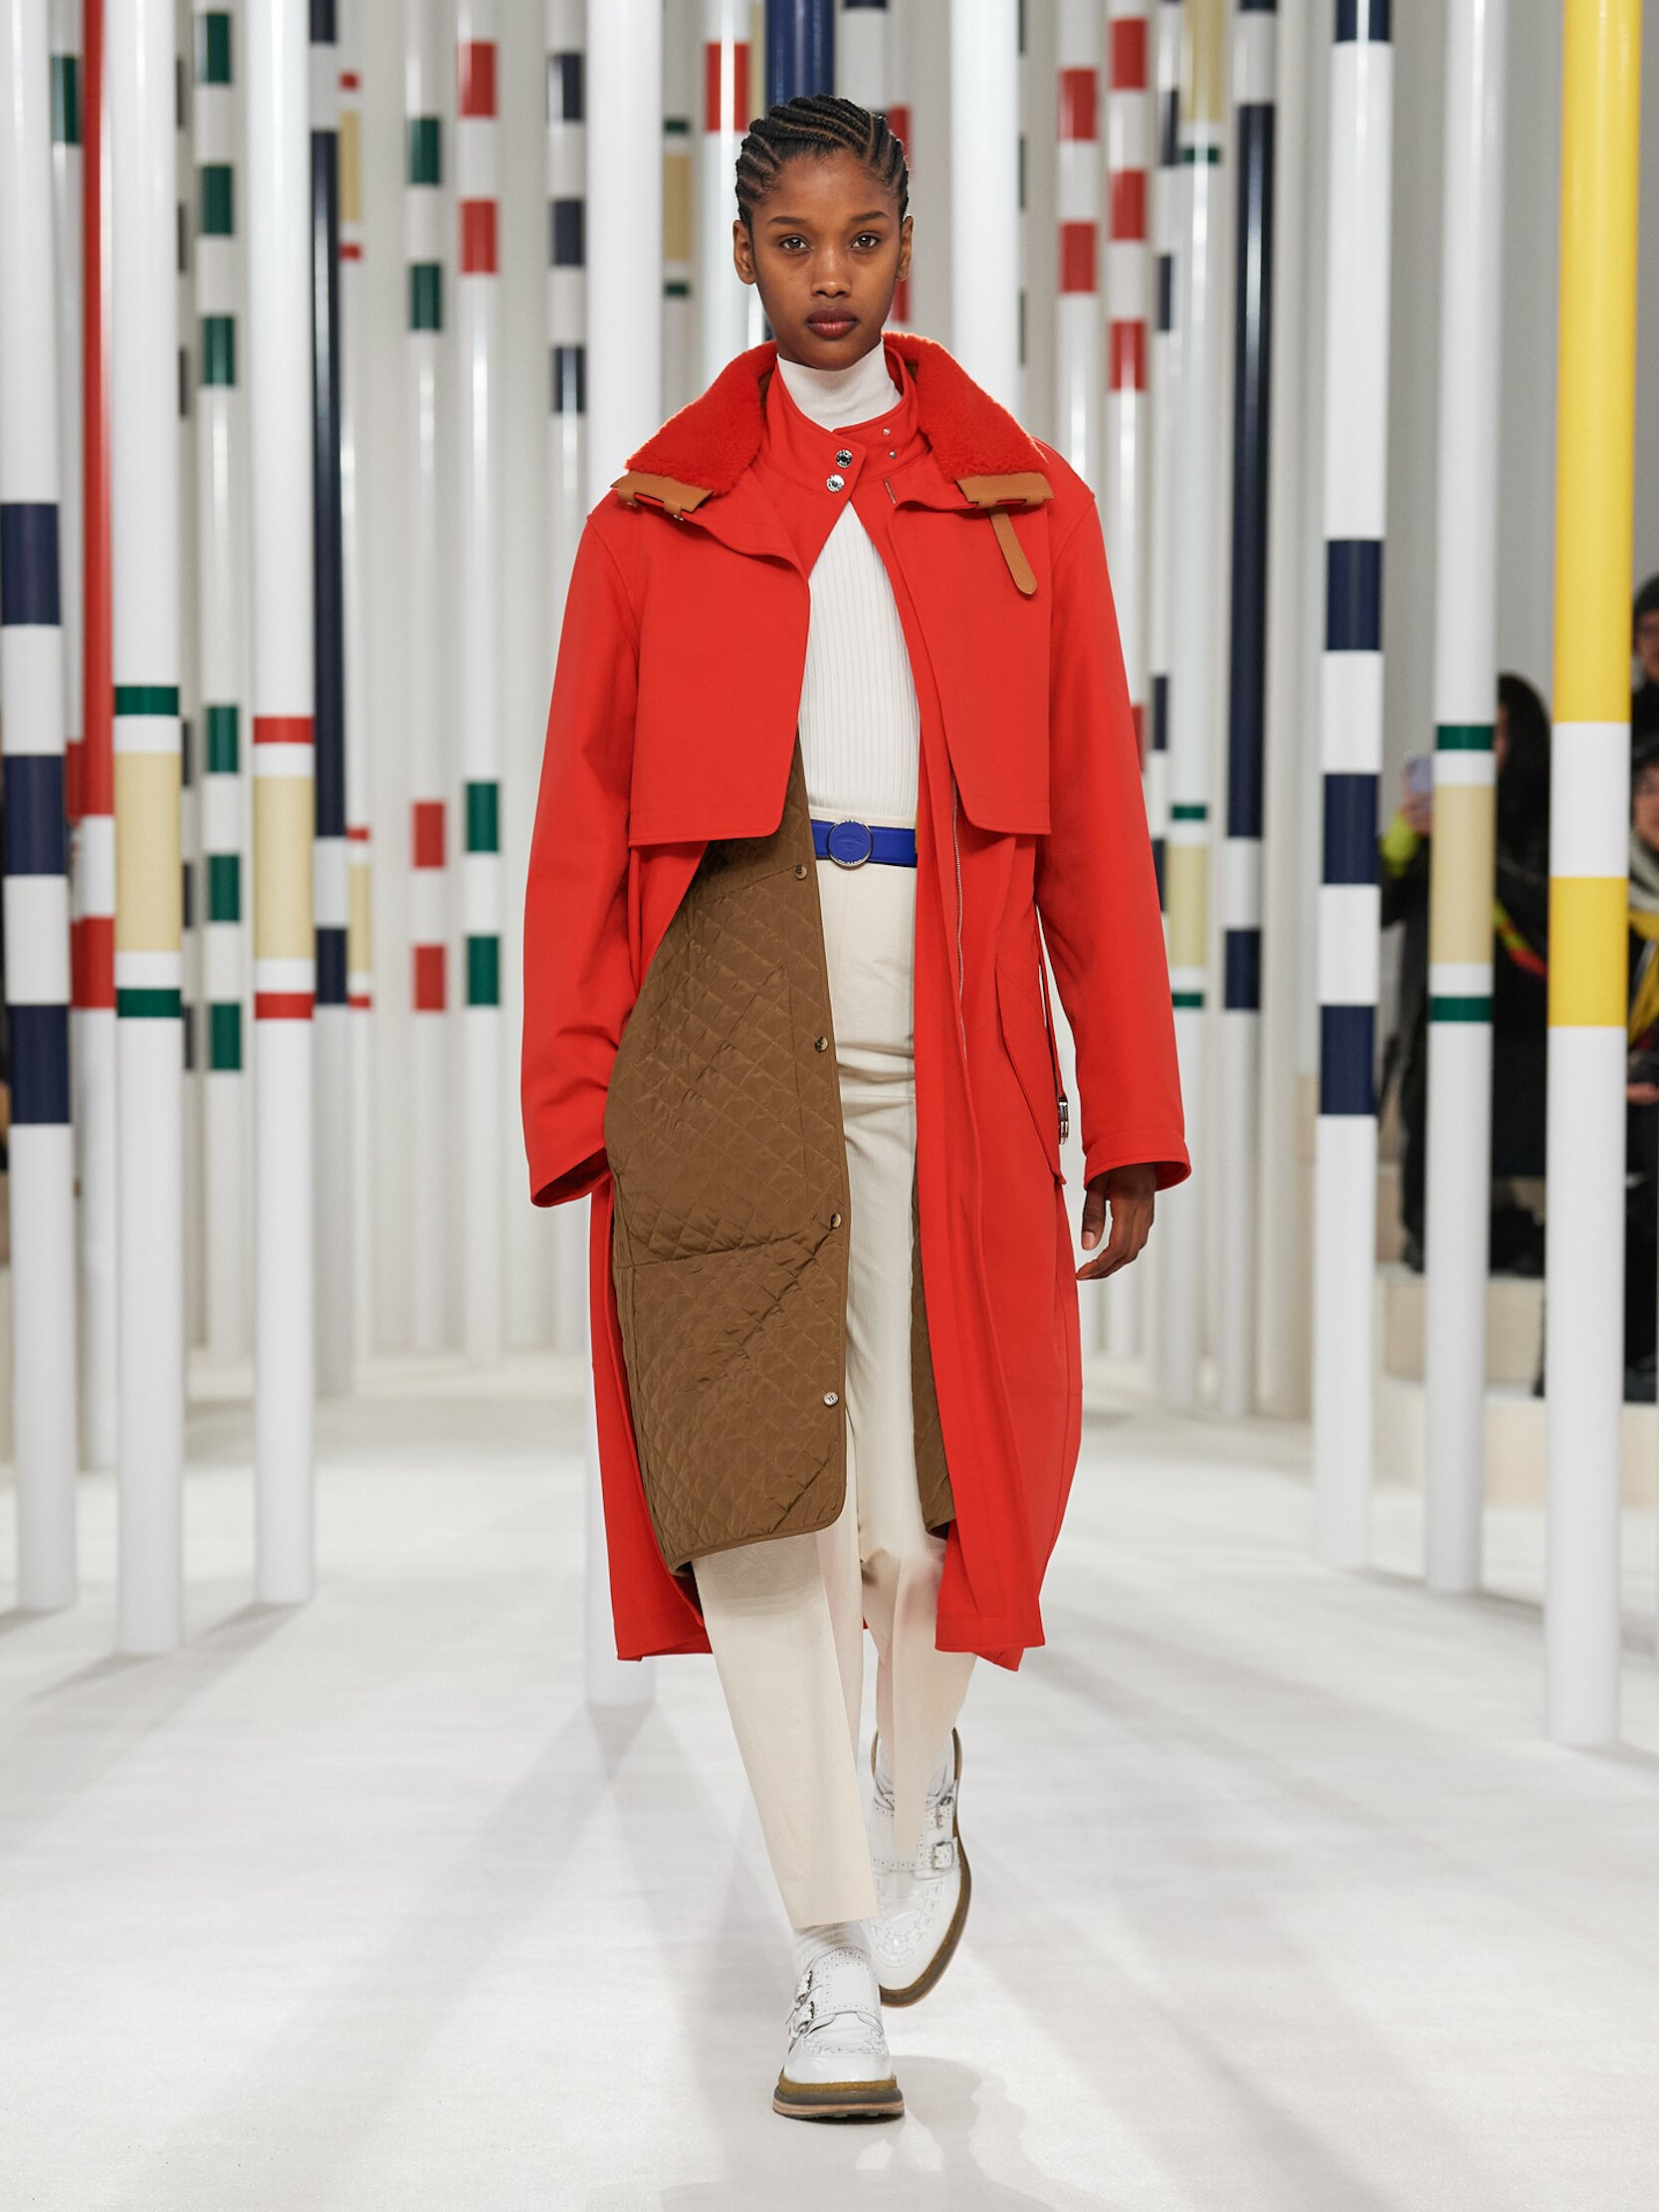 FW 2020-21 Hermès Fashion Show